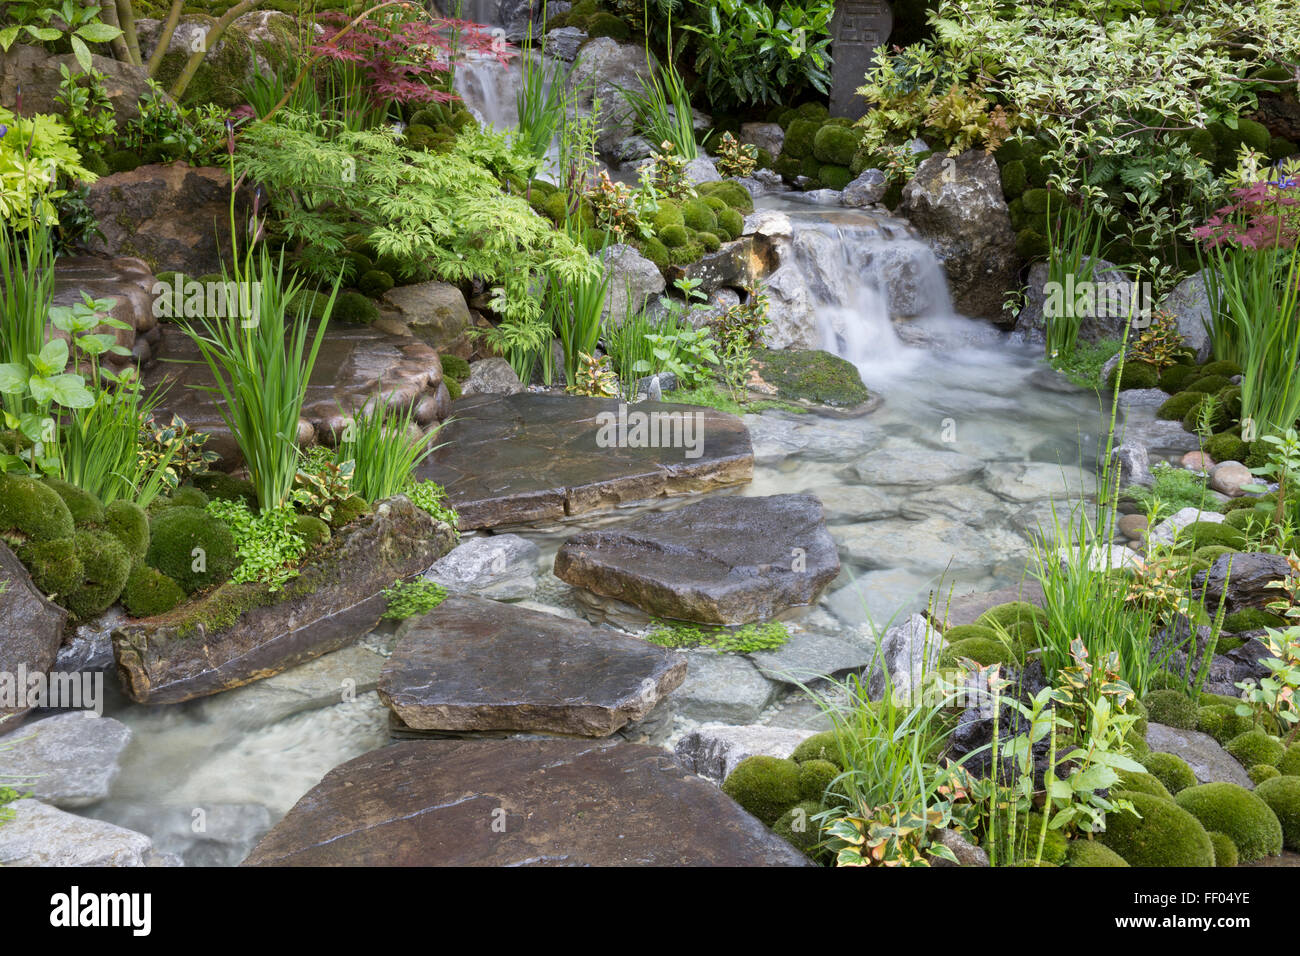 Edo no Niwa – Edo Garden – Japanese garden with waterfall water feature stone stepping stones, moss covered stone - Stock Image